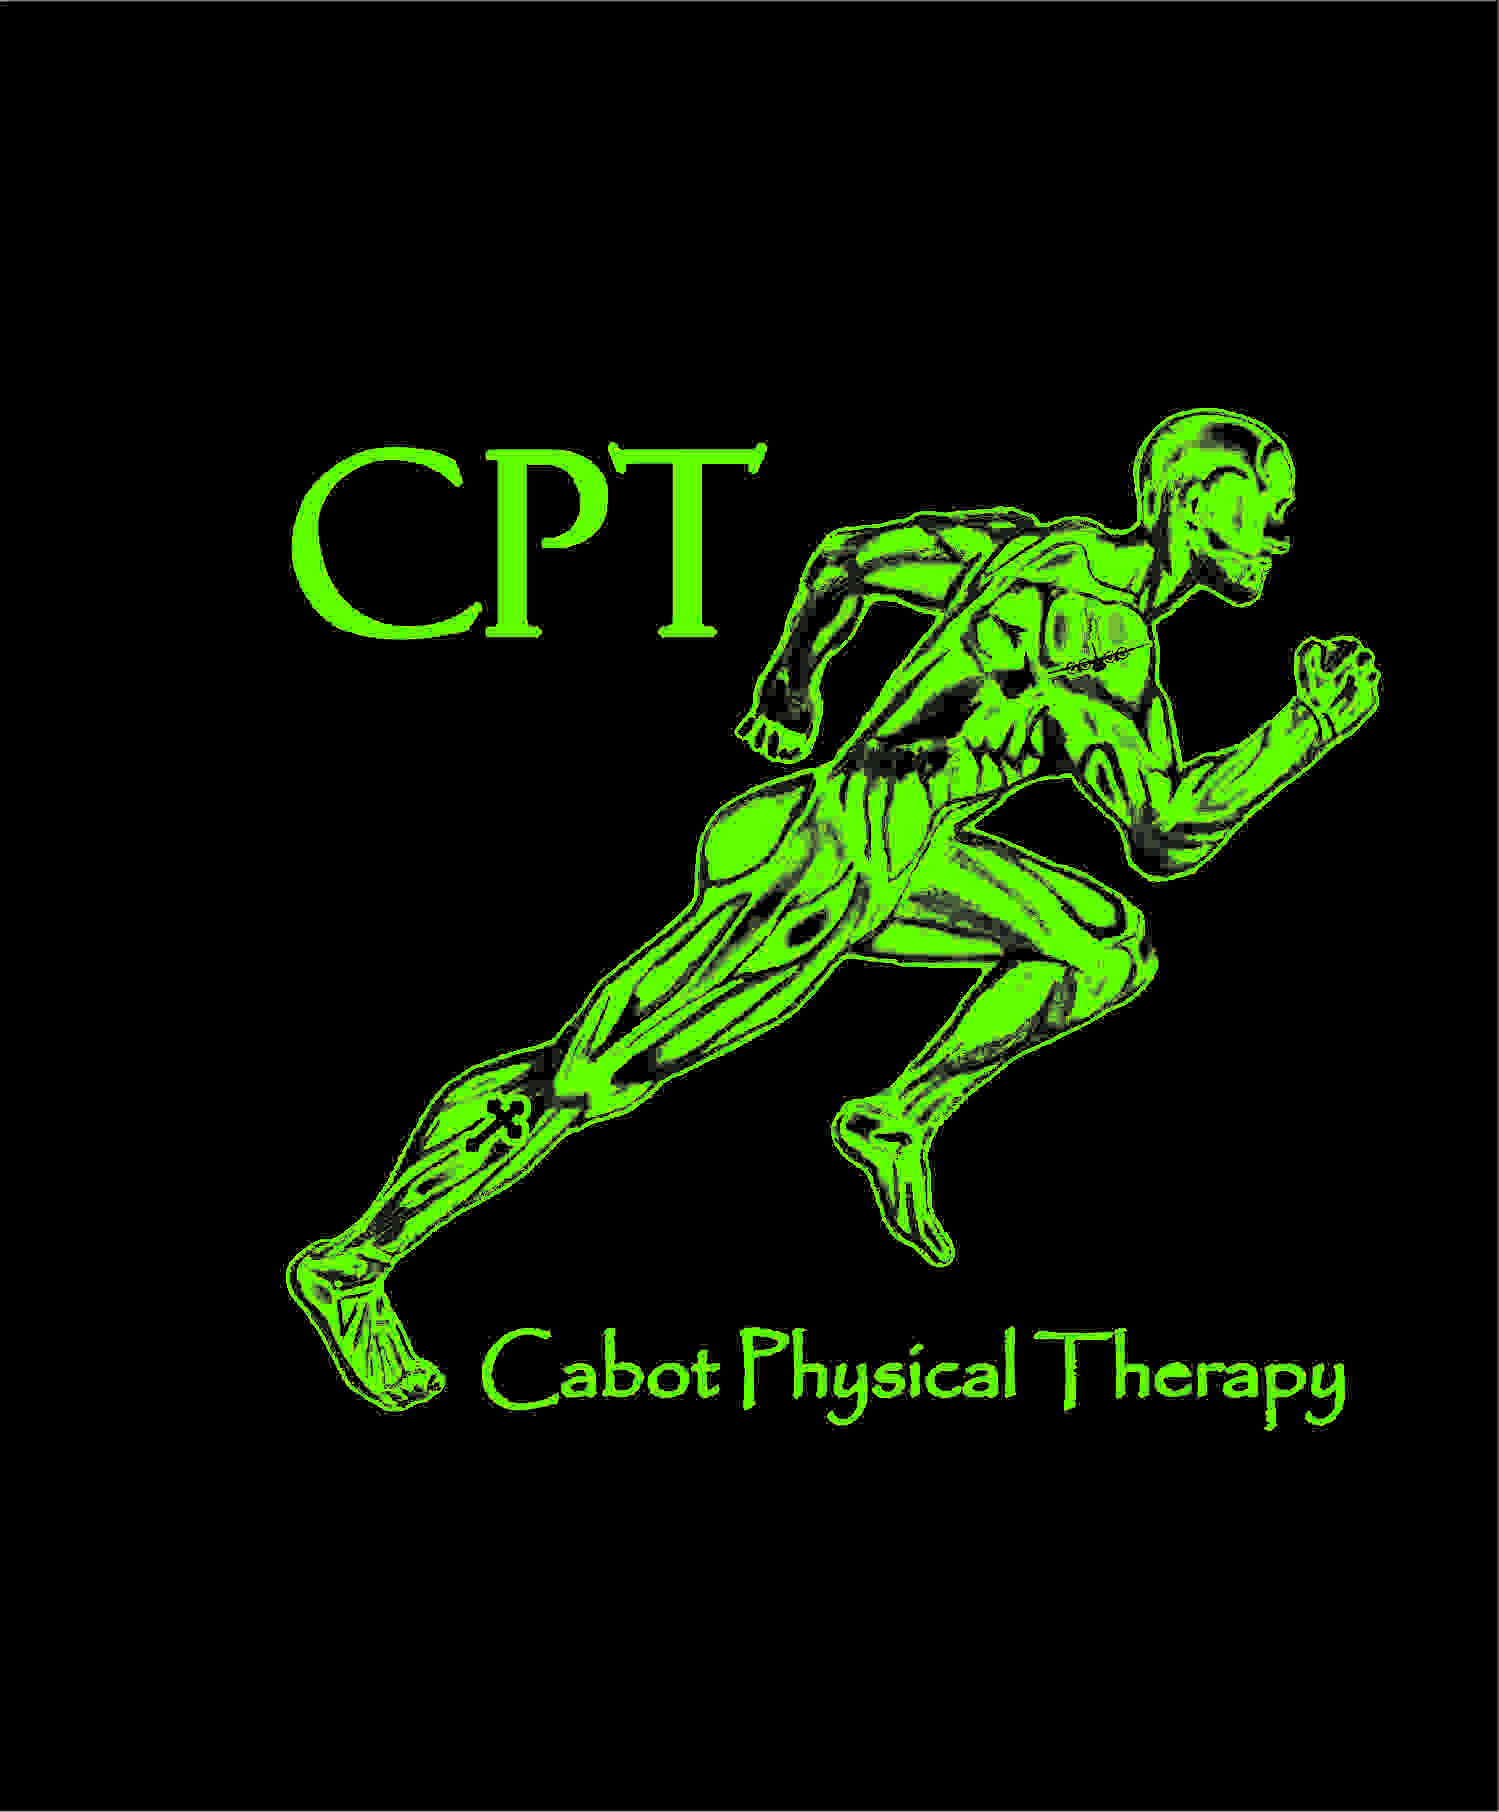 Cabot Physical Therapy